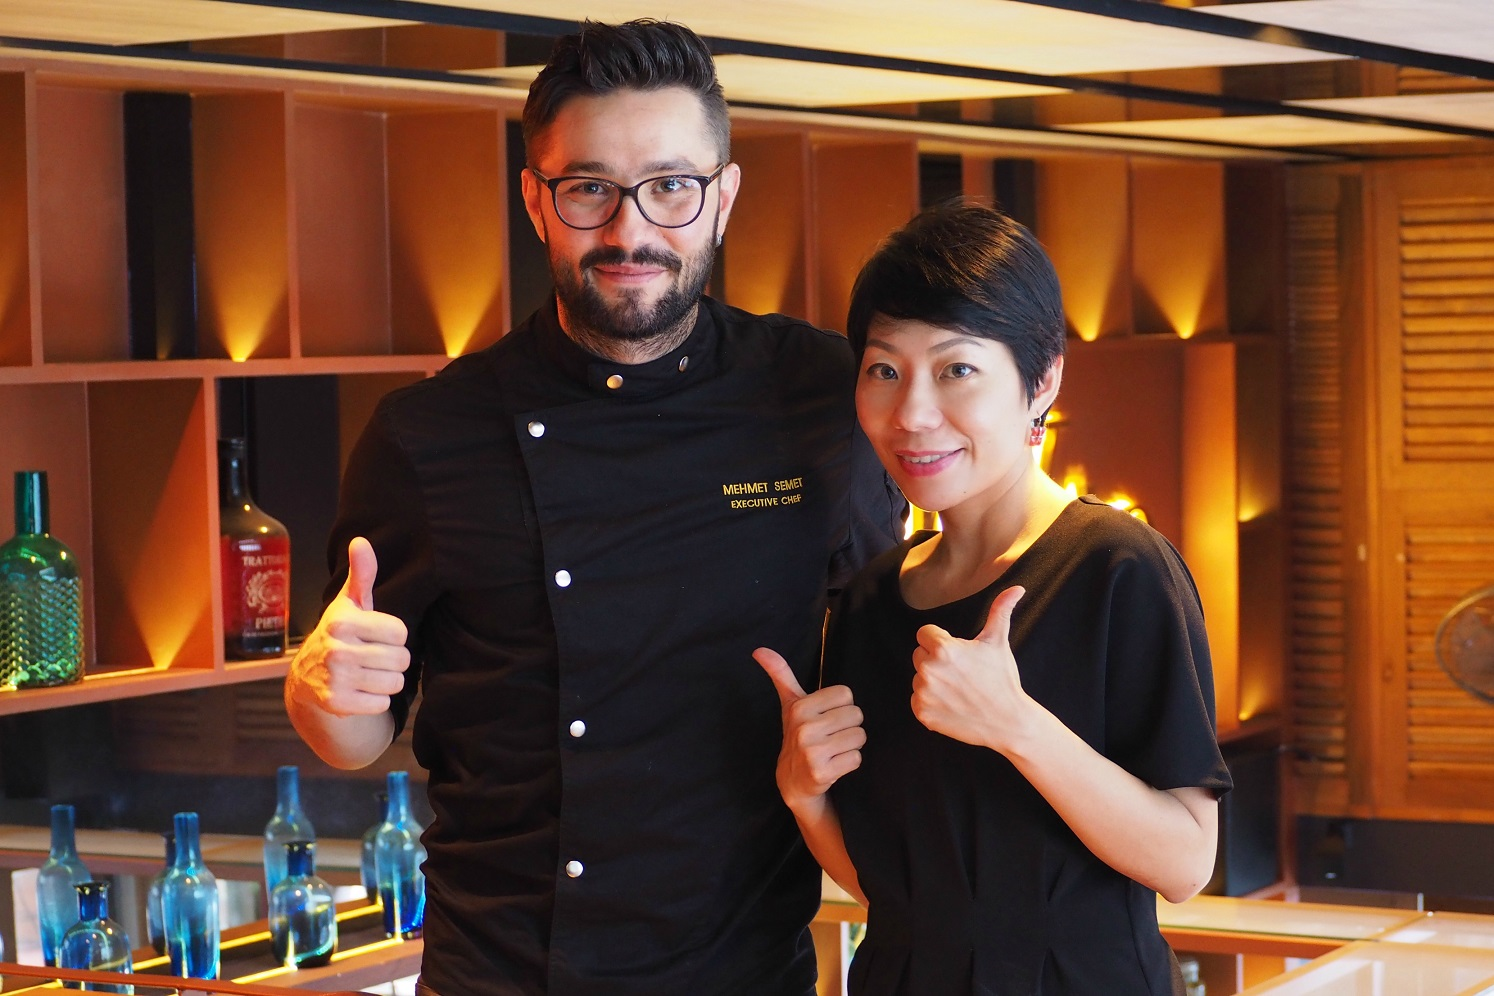 Executive Chef Mehmet Semet Invite Bangkok